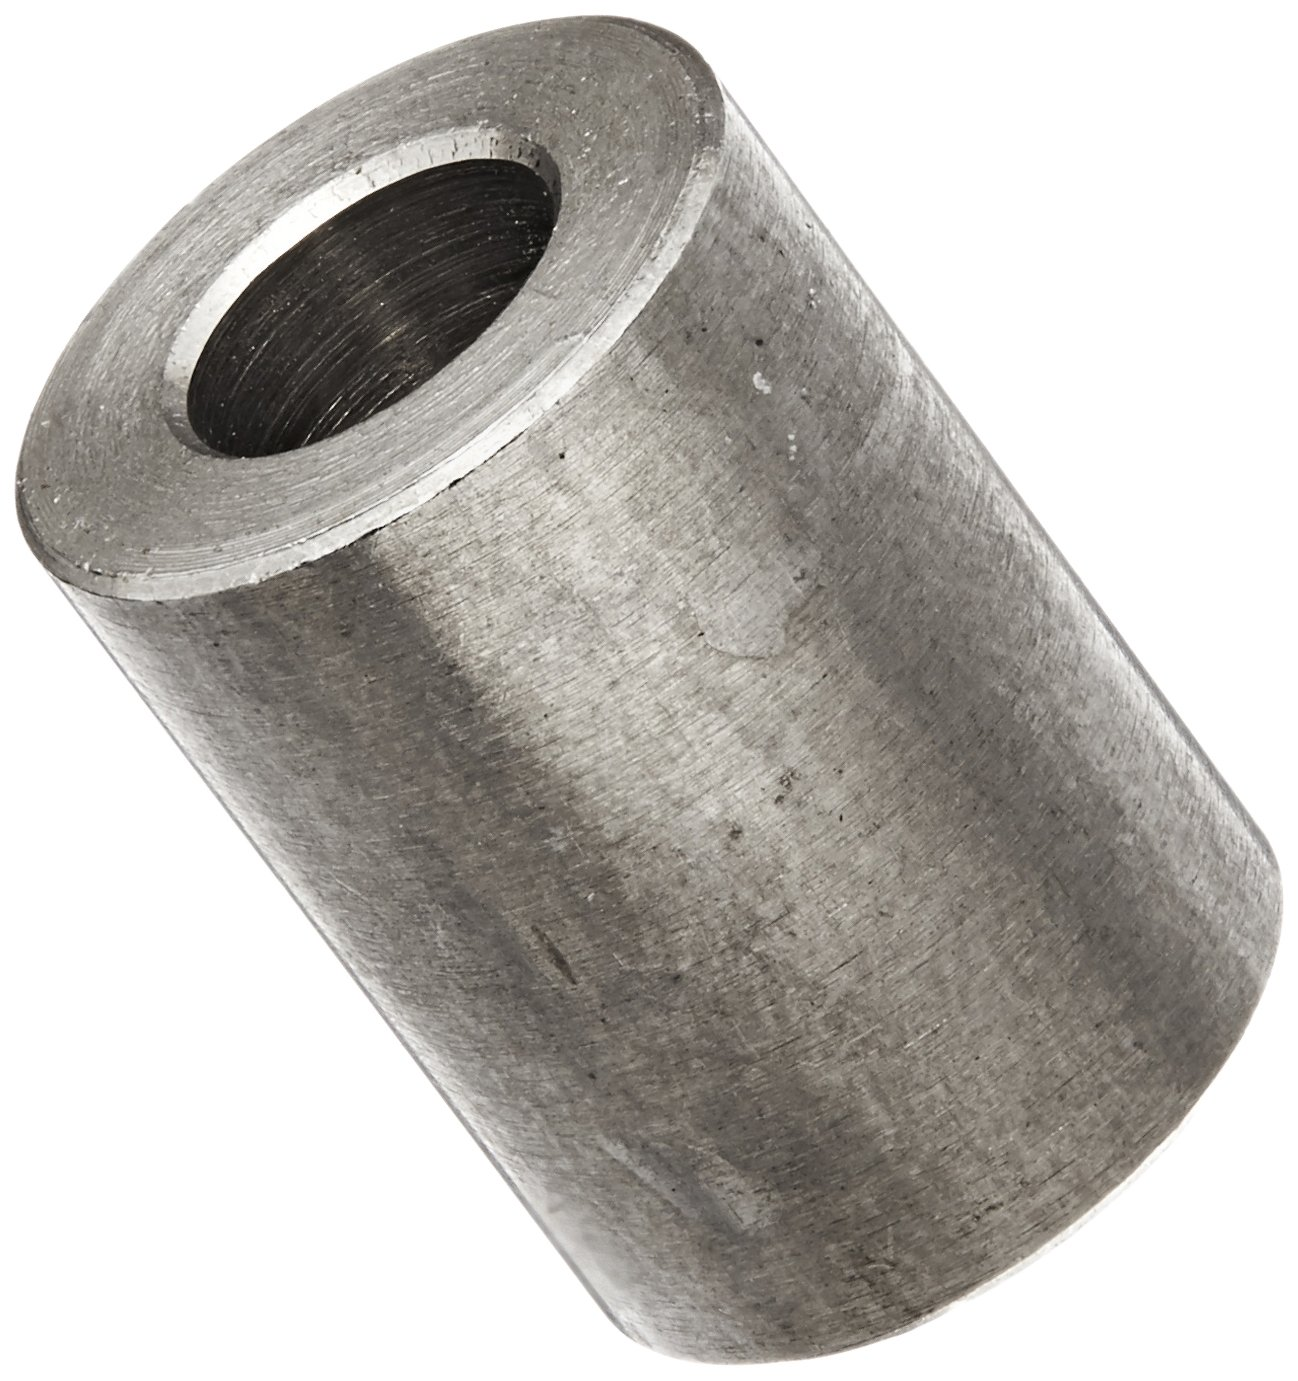 Round Spacer x Variety 3//4 o.d 7//16 I.d. Alum Pk 10 Made in U.S.A.